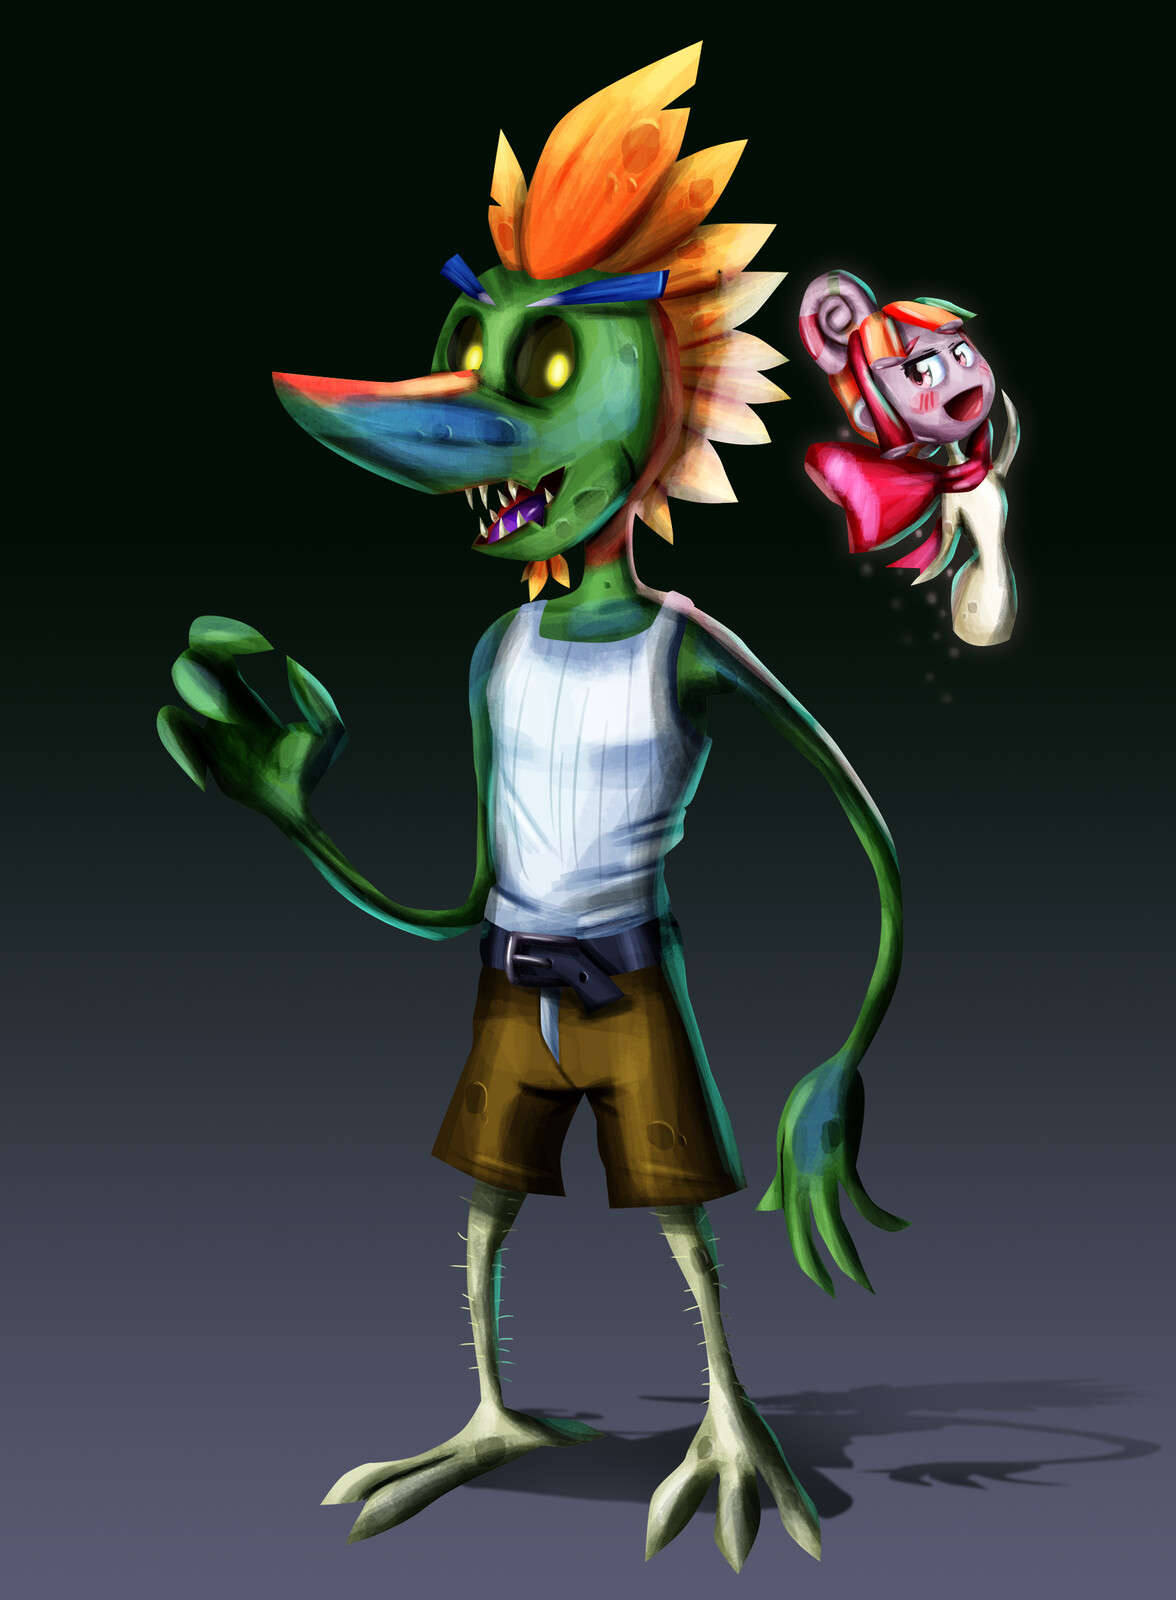 Better renders of the protagonists.